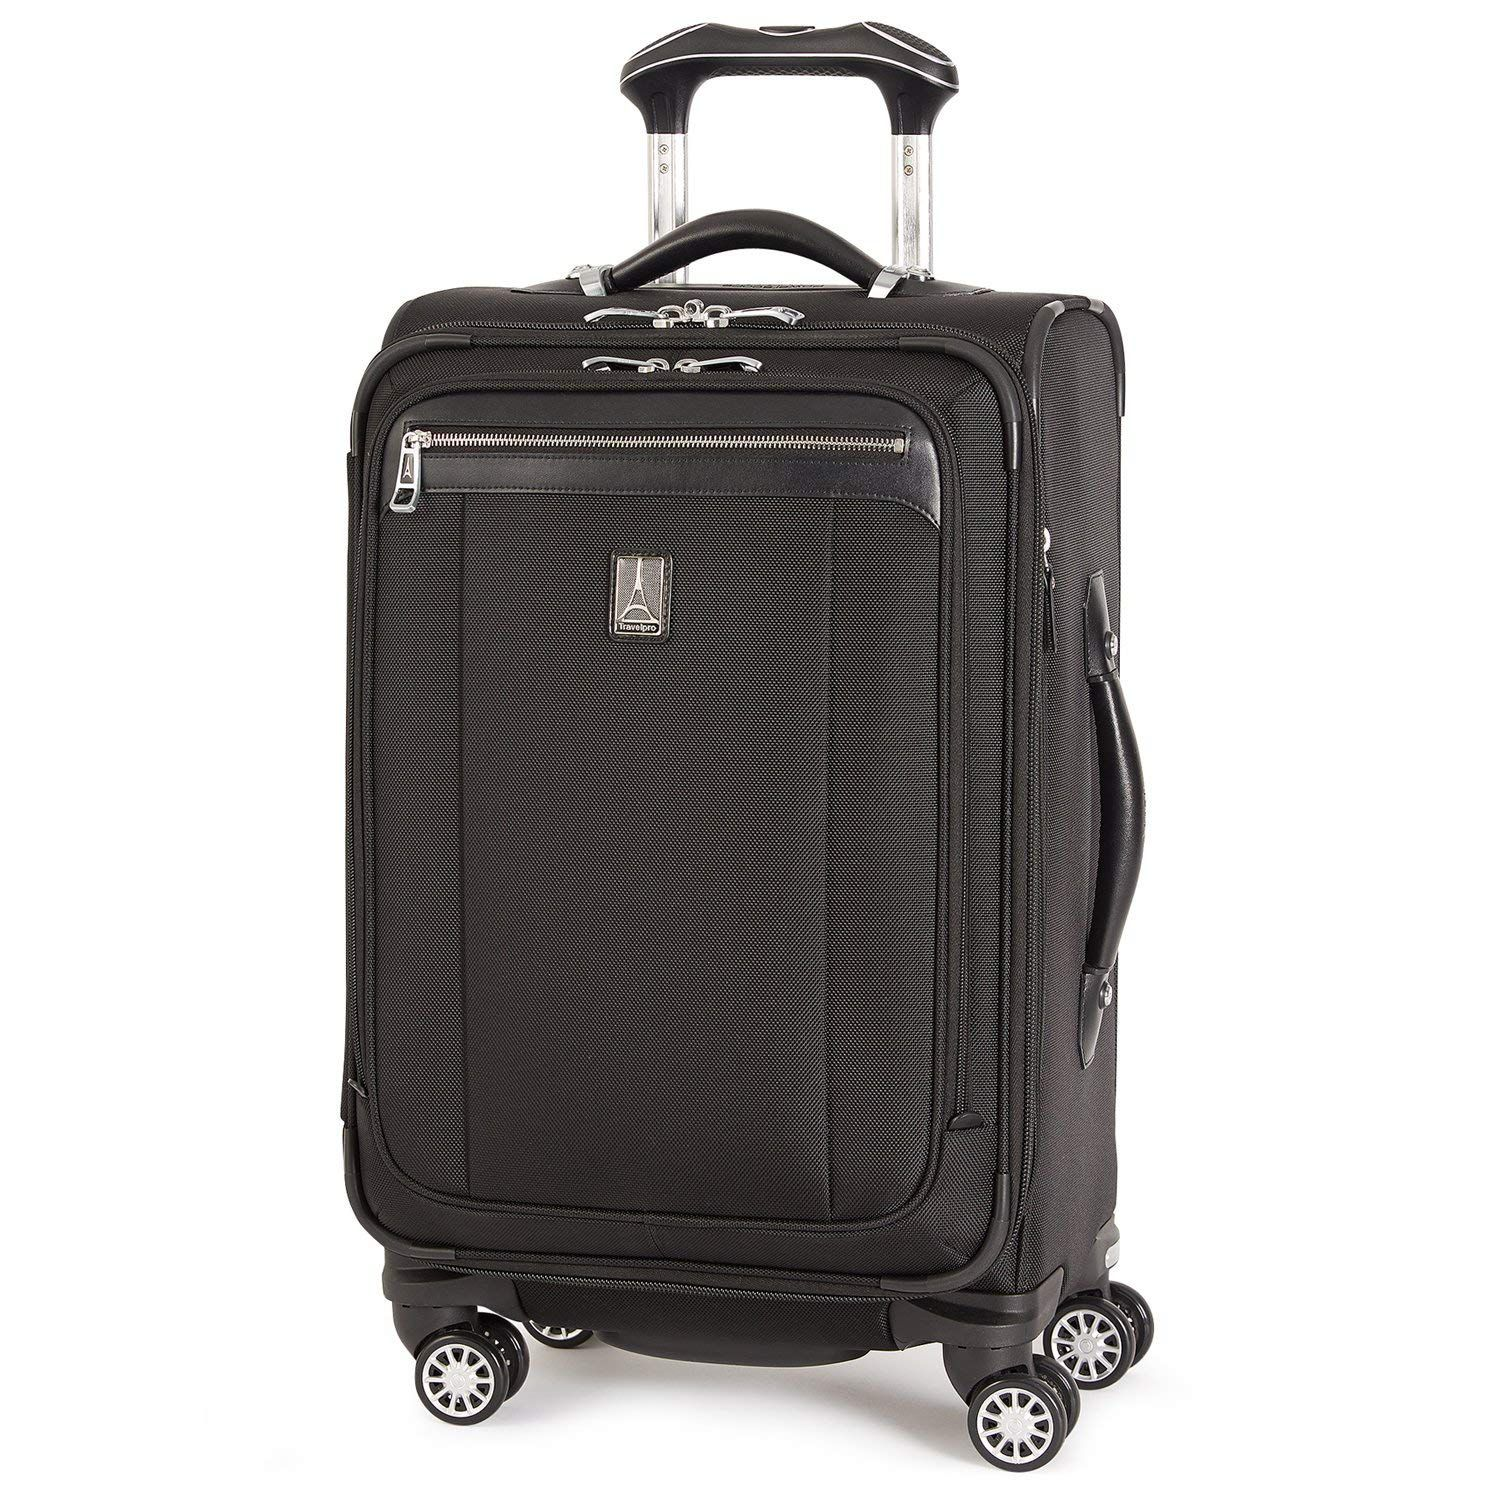 8 Best Carry On Luggage For Business Travelers 2018 Tumi Hanger 2